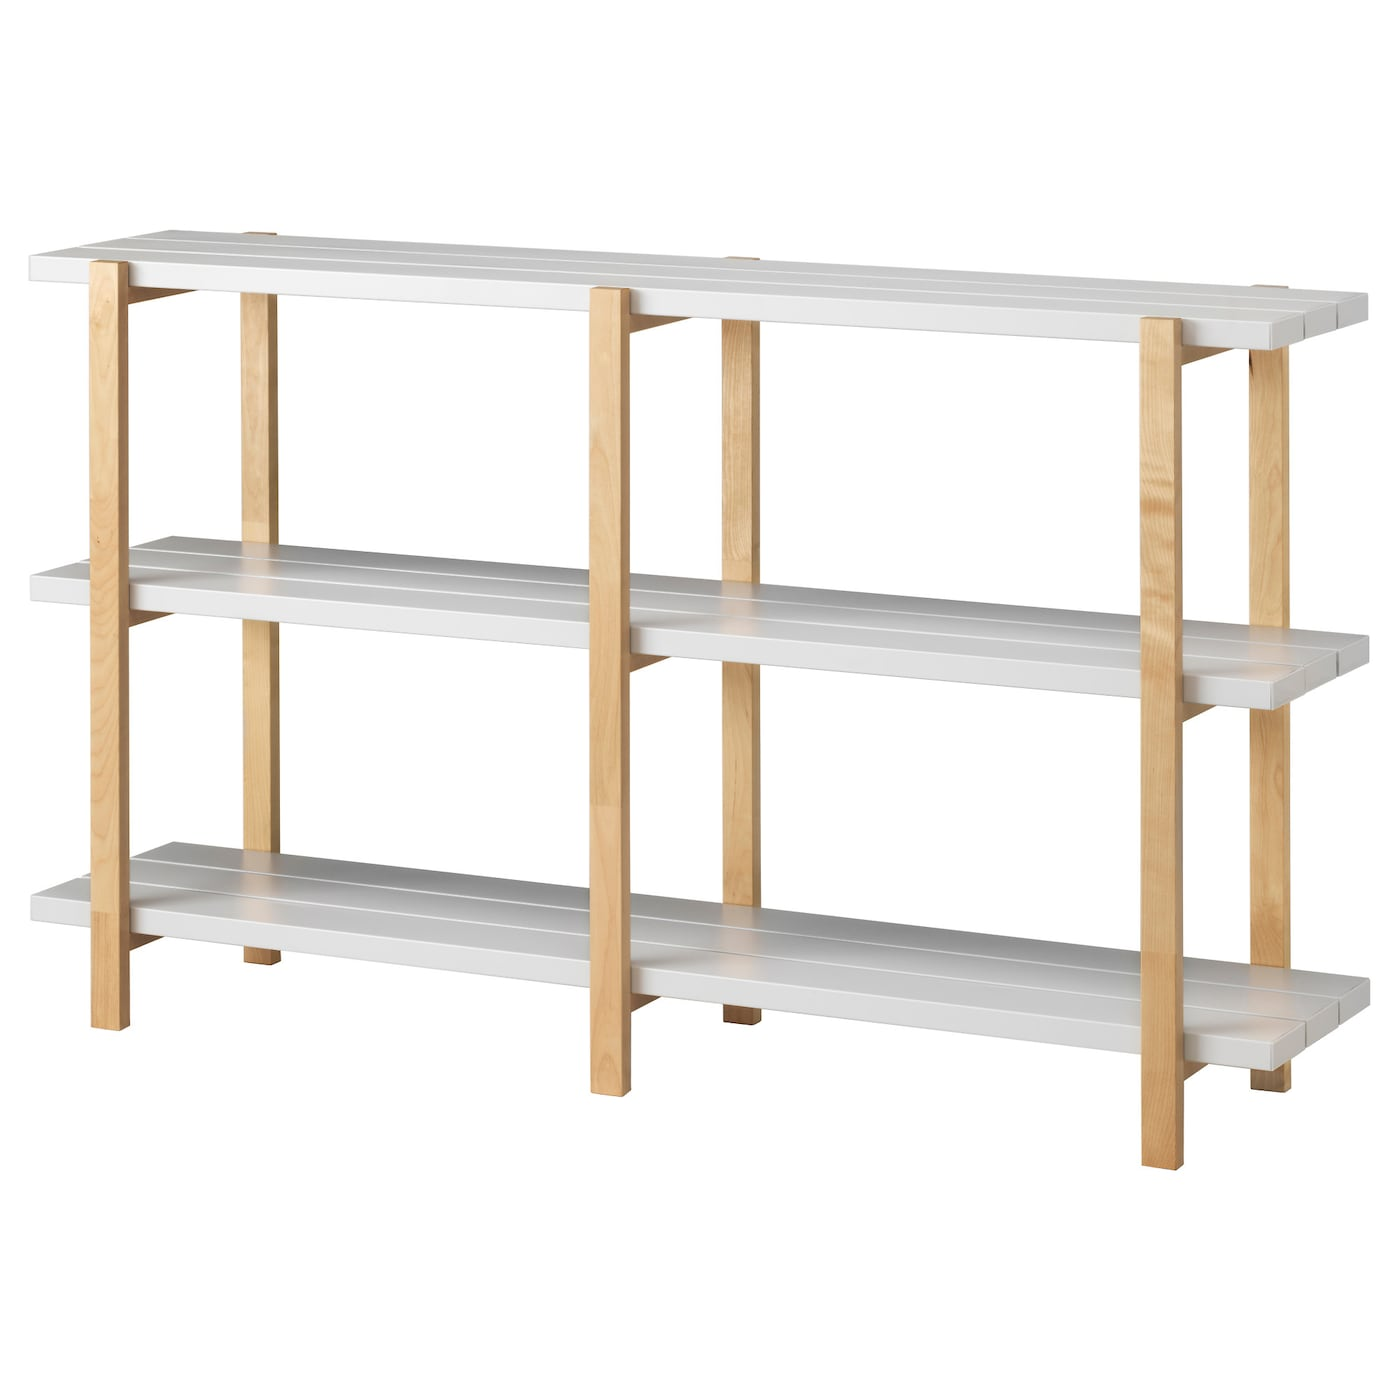 products furniture billy gb morliden small en bookshelf white ikea bookcase bookcases storage